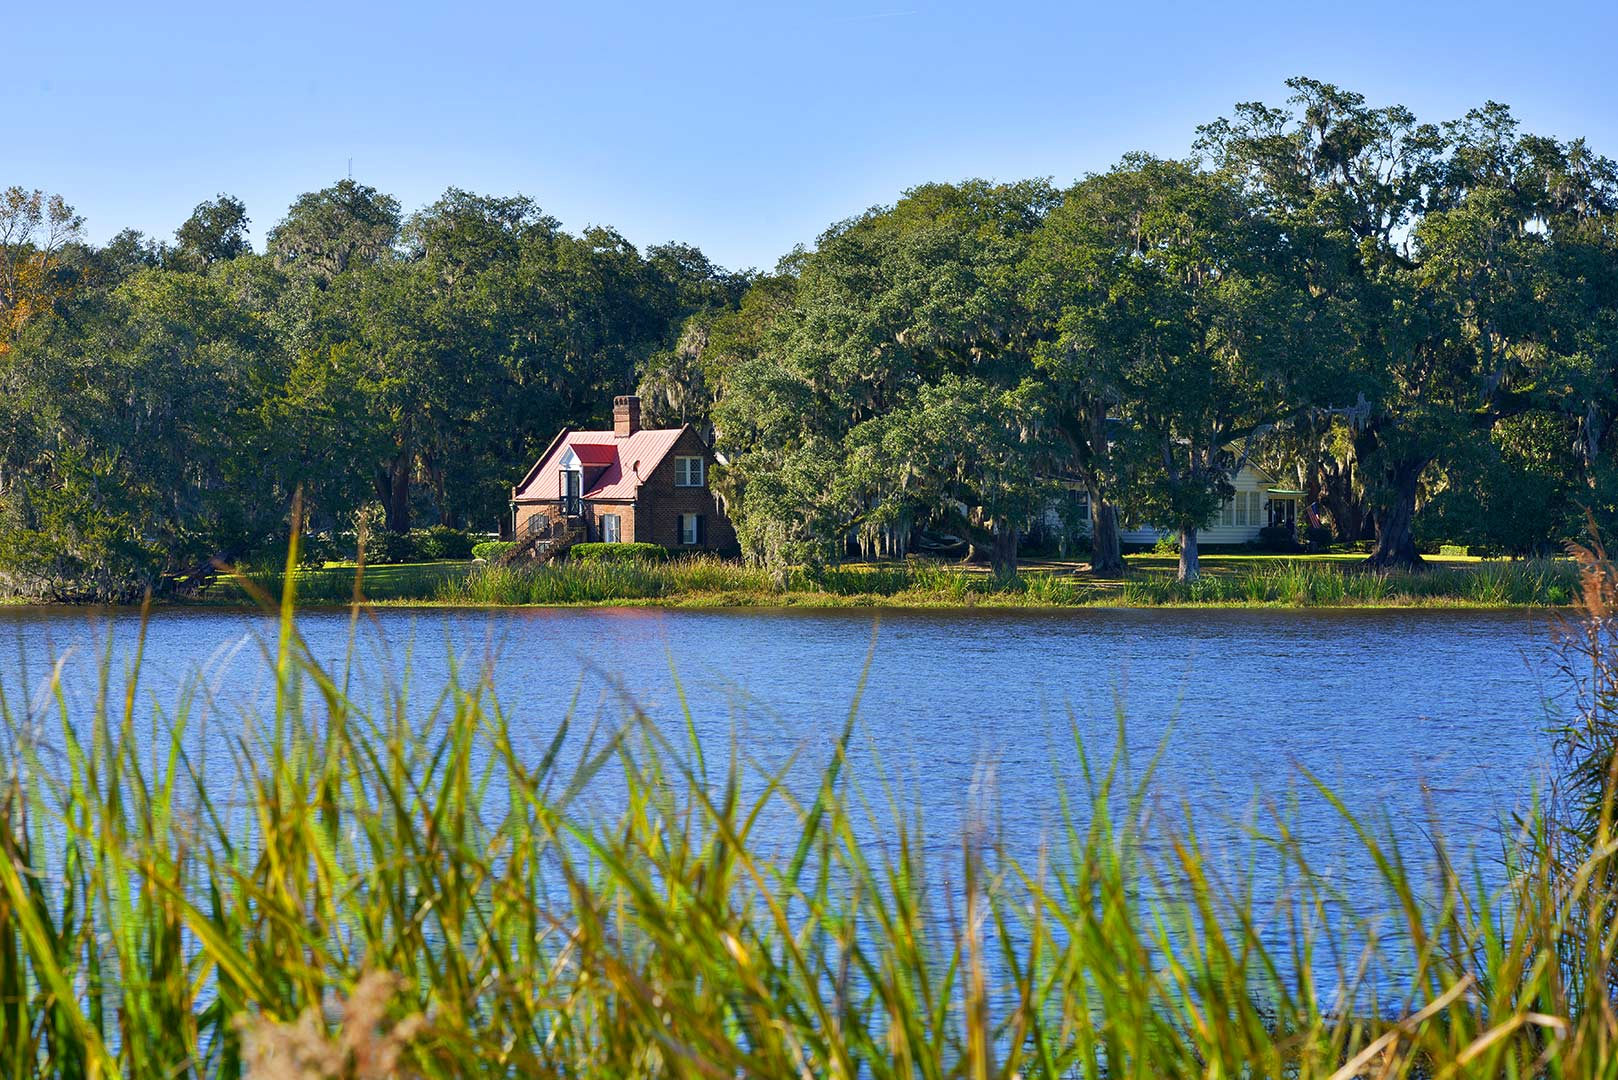 A body of water surrounded by trees at Mansfield Plantation Bed & Breakfast.